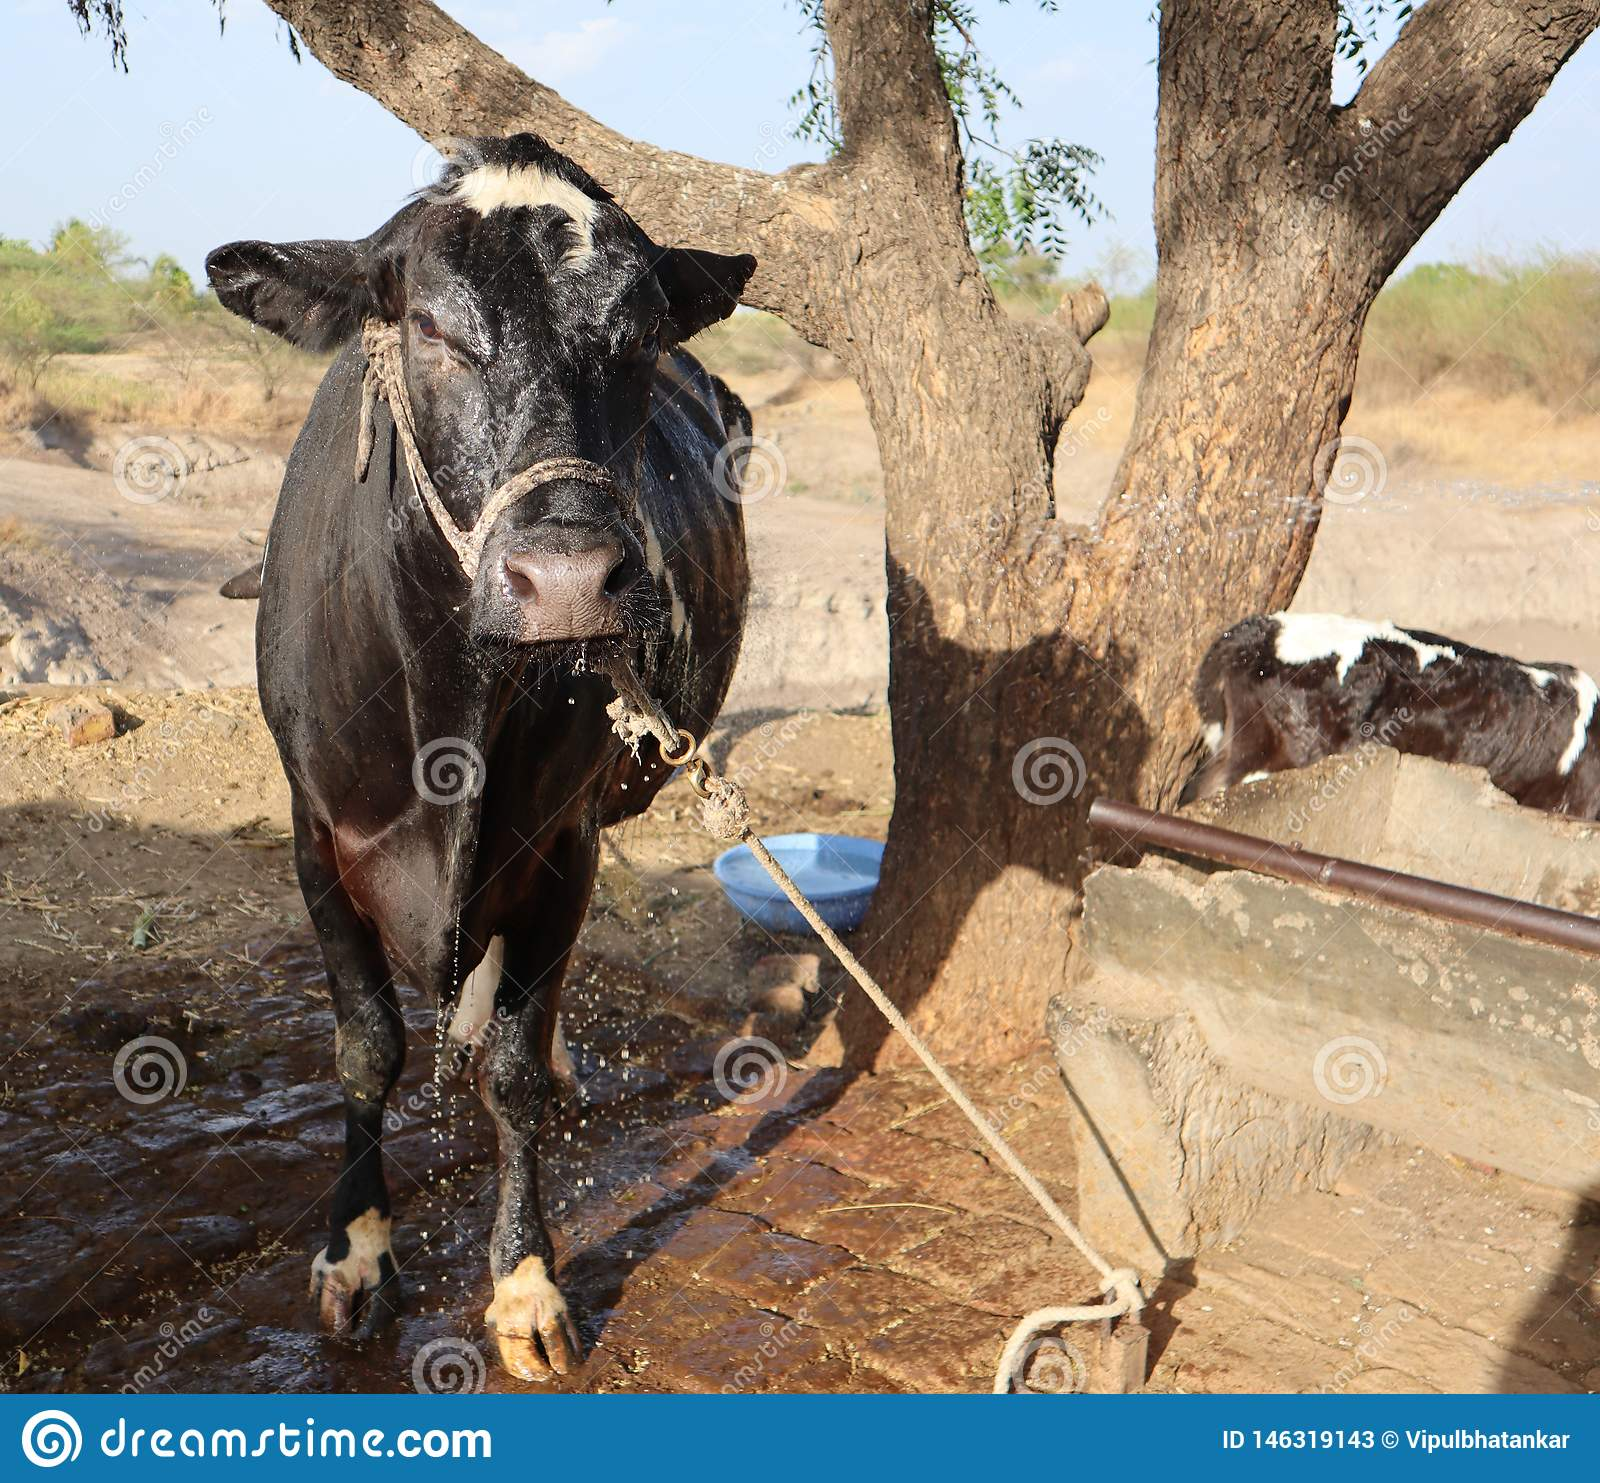 A cow drenched in water after bath